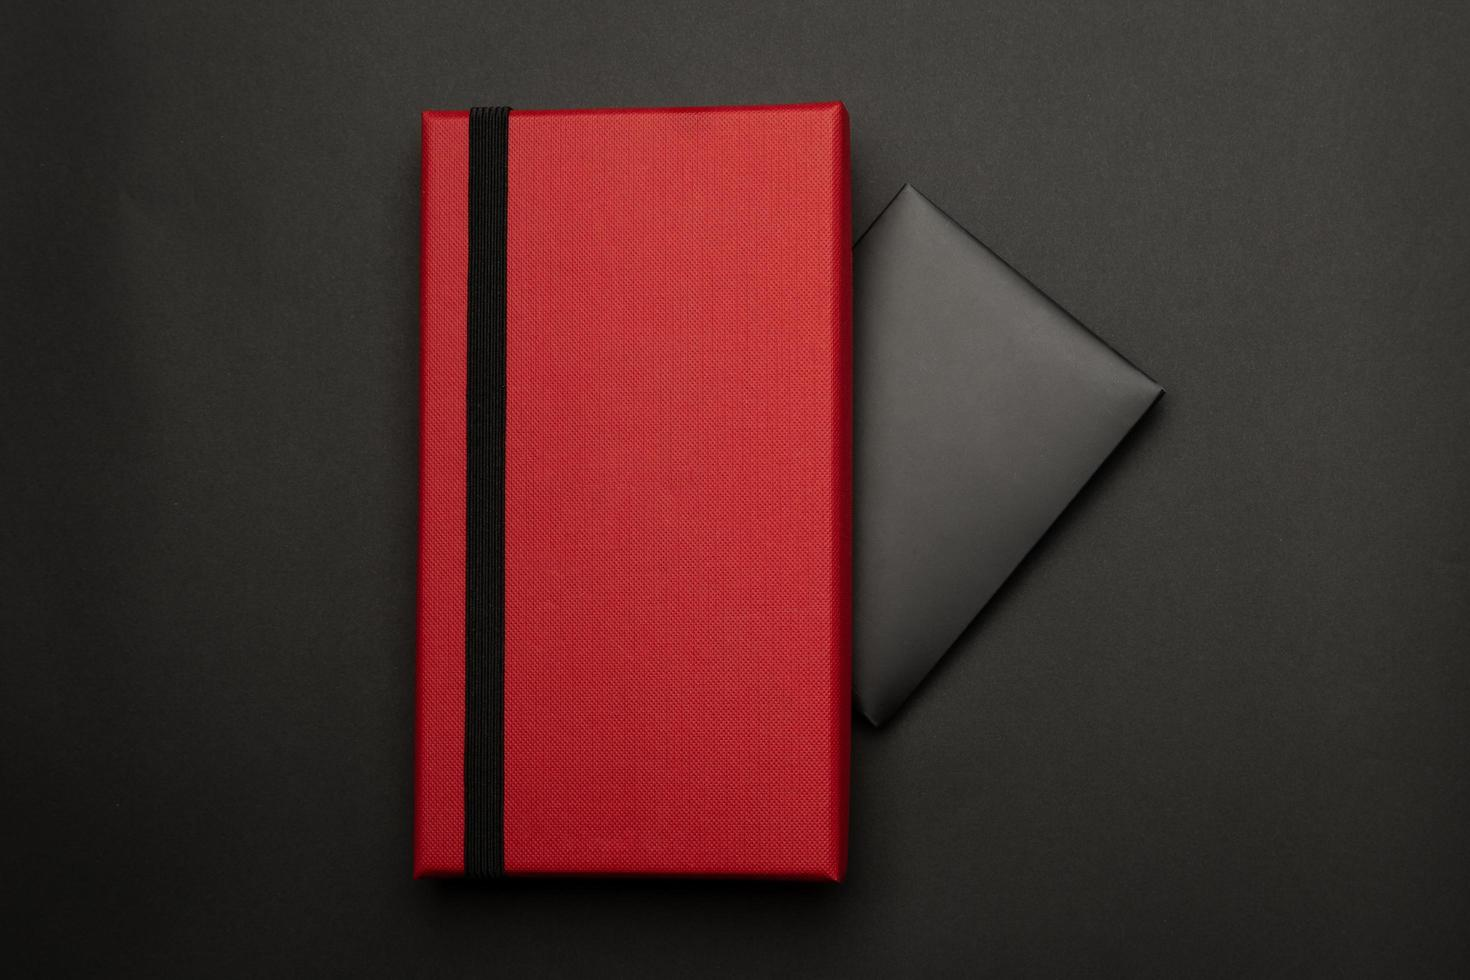 Red gift box with black envelope card photo